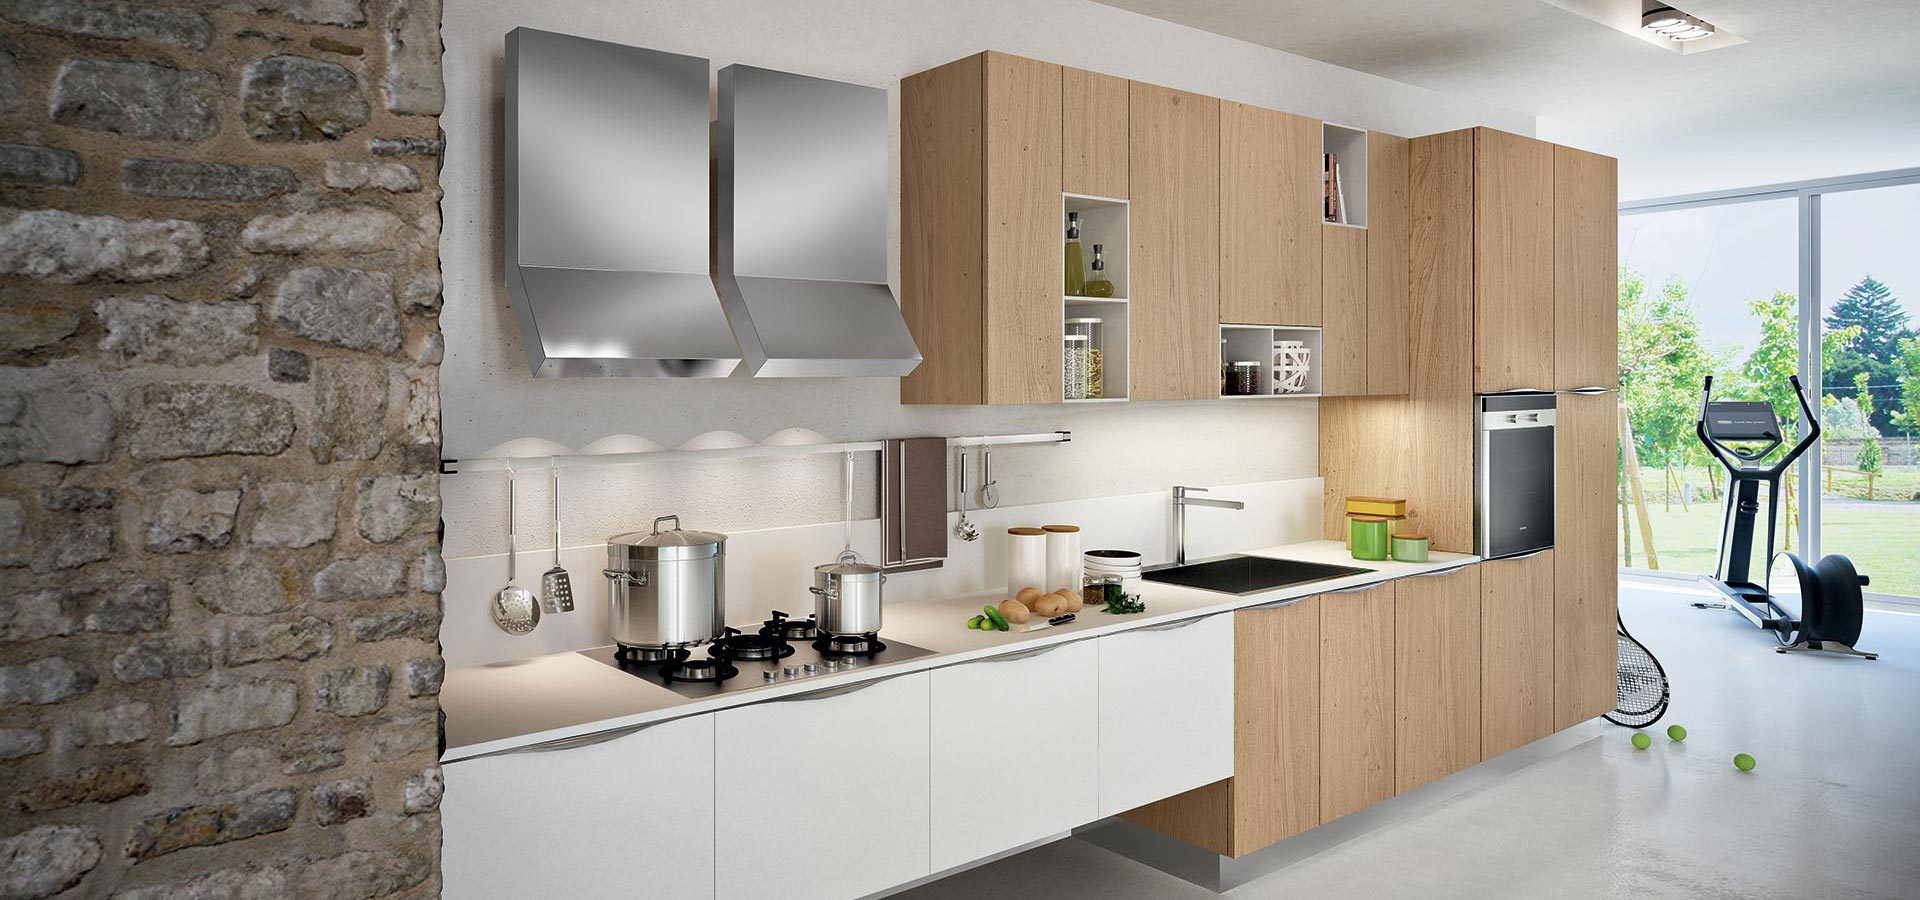 we pride ourselves on fabulous kitchen design…